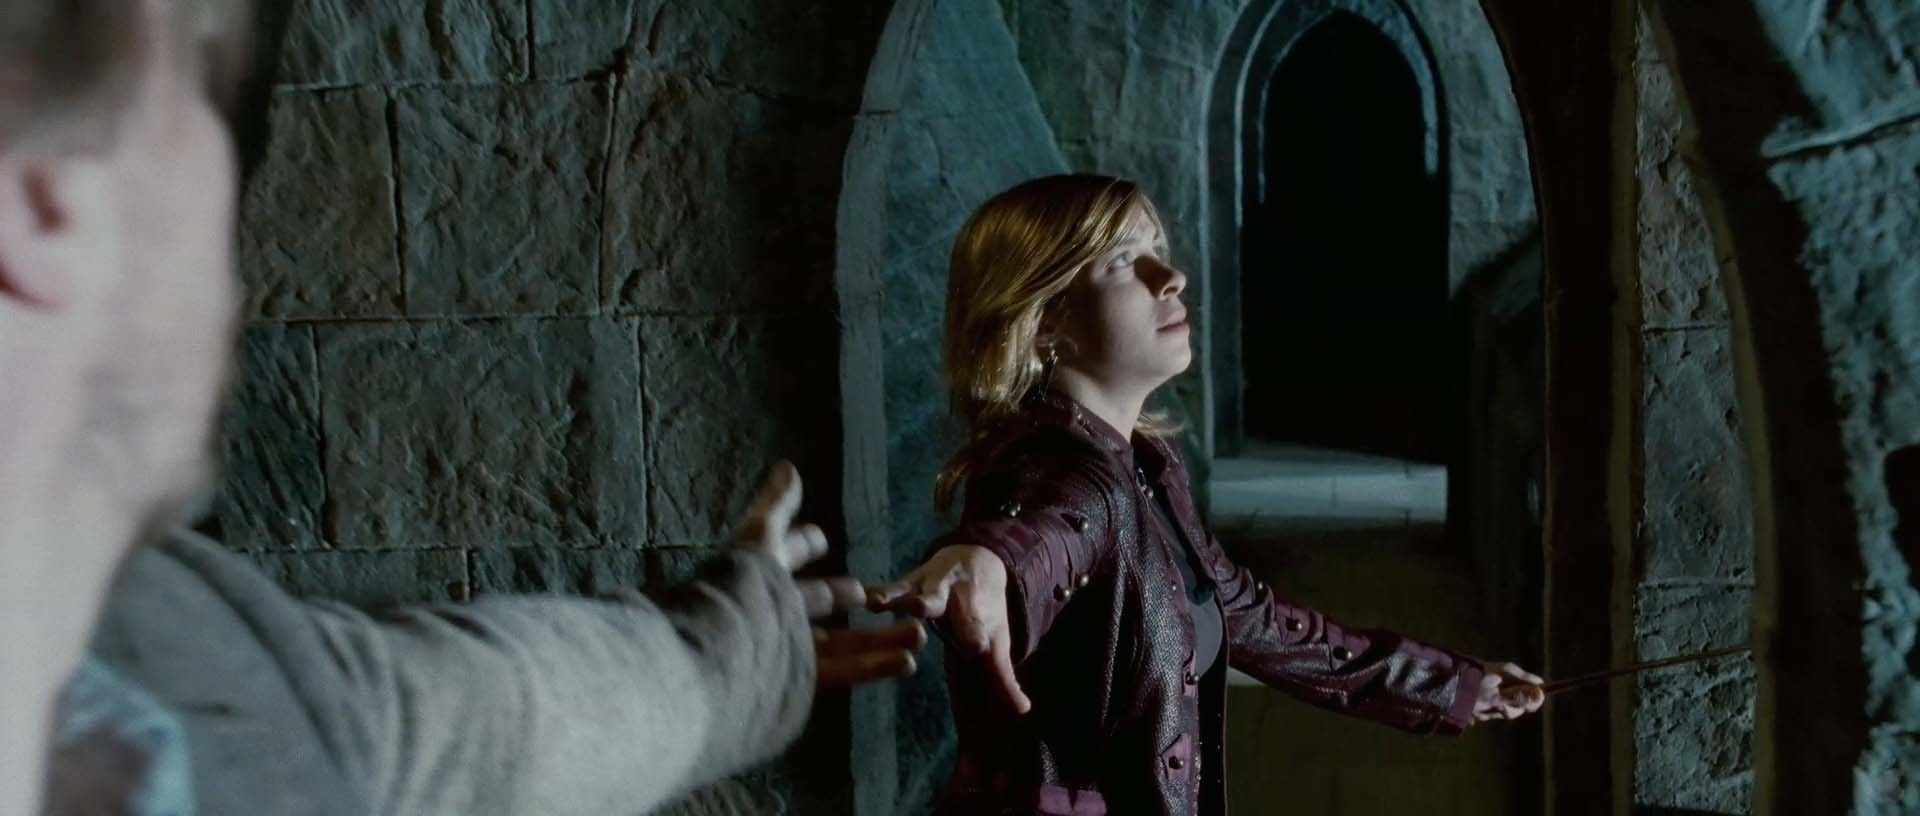 Tonks Lupin Image Tonks Lupin In Deathly Hallows Pt 2 Trailer Tonks And Lupin Remus And Tonks Harry Potter Pictures